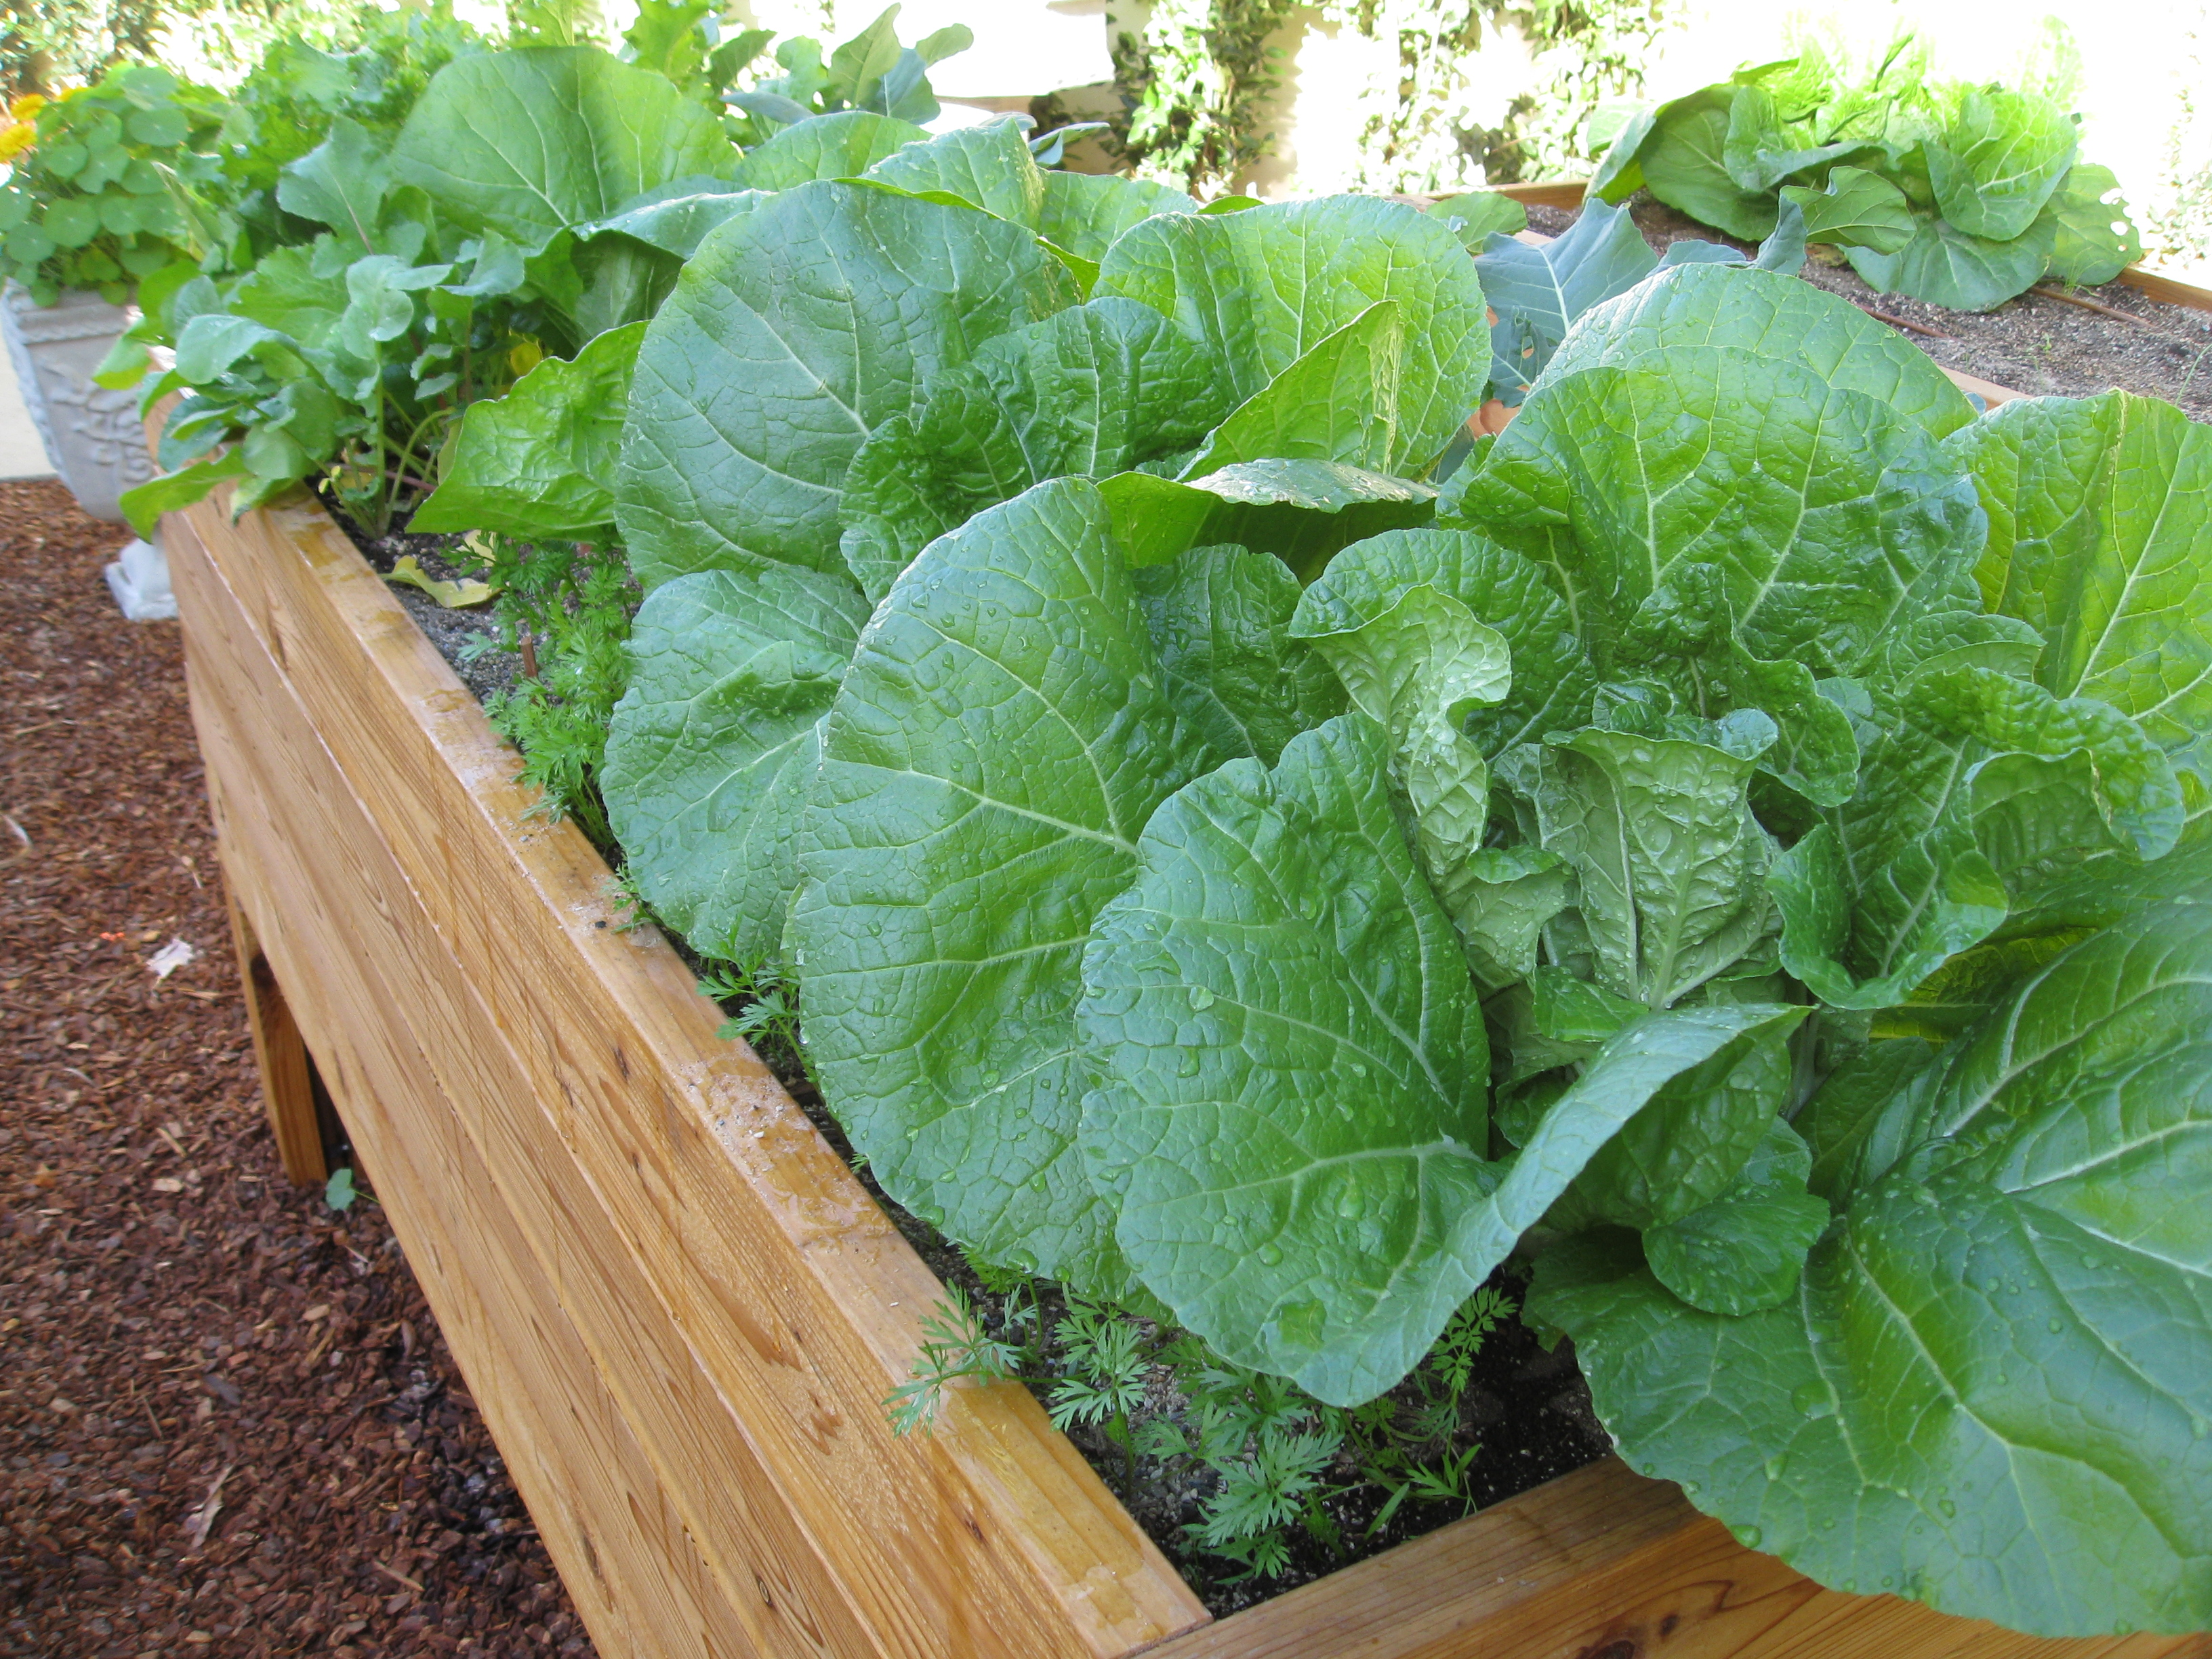 Seed-grown cabbages, carrots and mustard greens are bursting from one resident's garden bed.